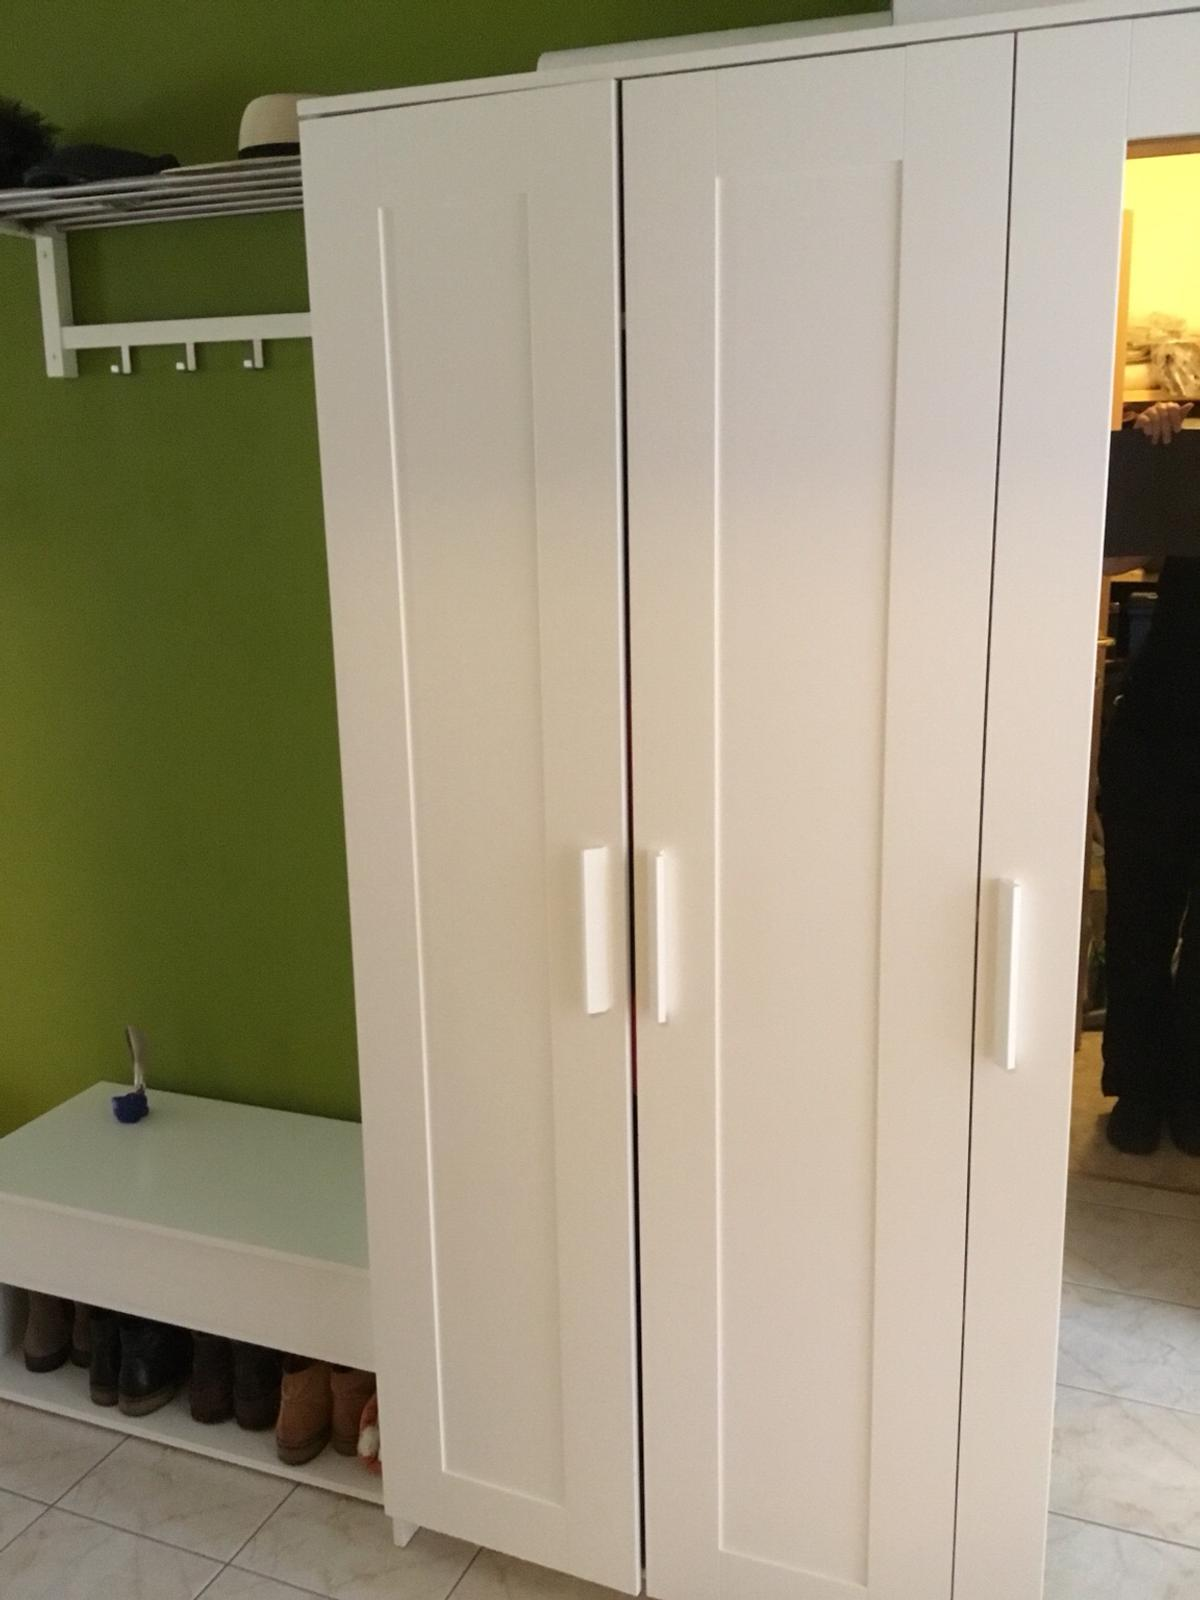 Ikea Brimnes Kleiderschrank In 6330 Kufstein For 30 00 For Sale